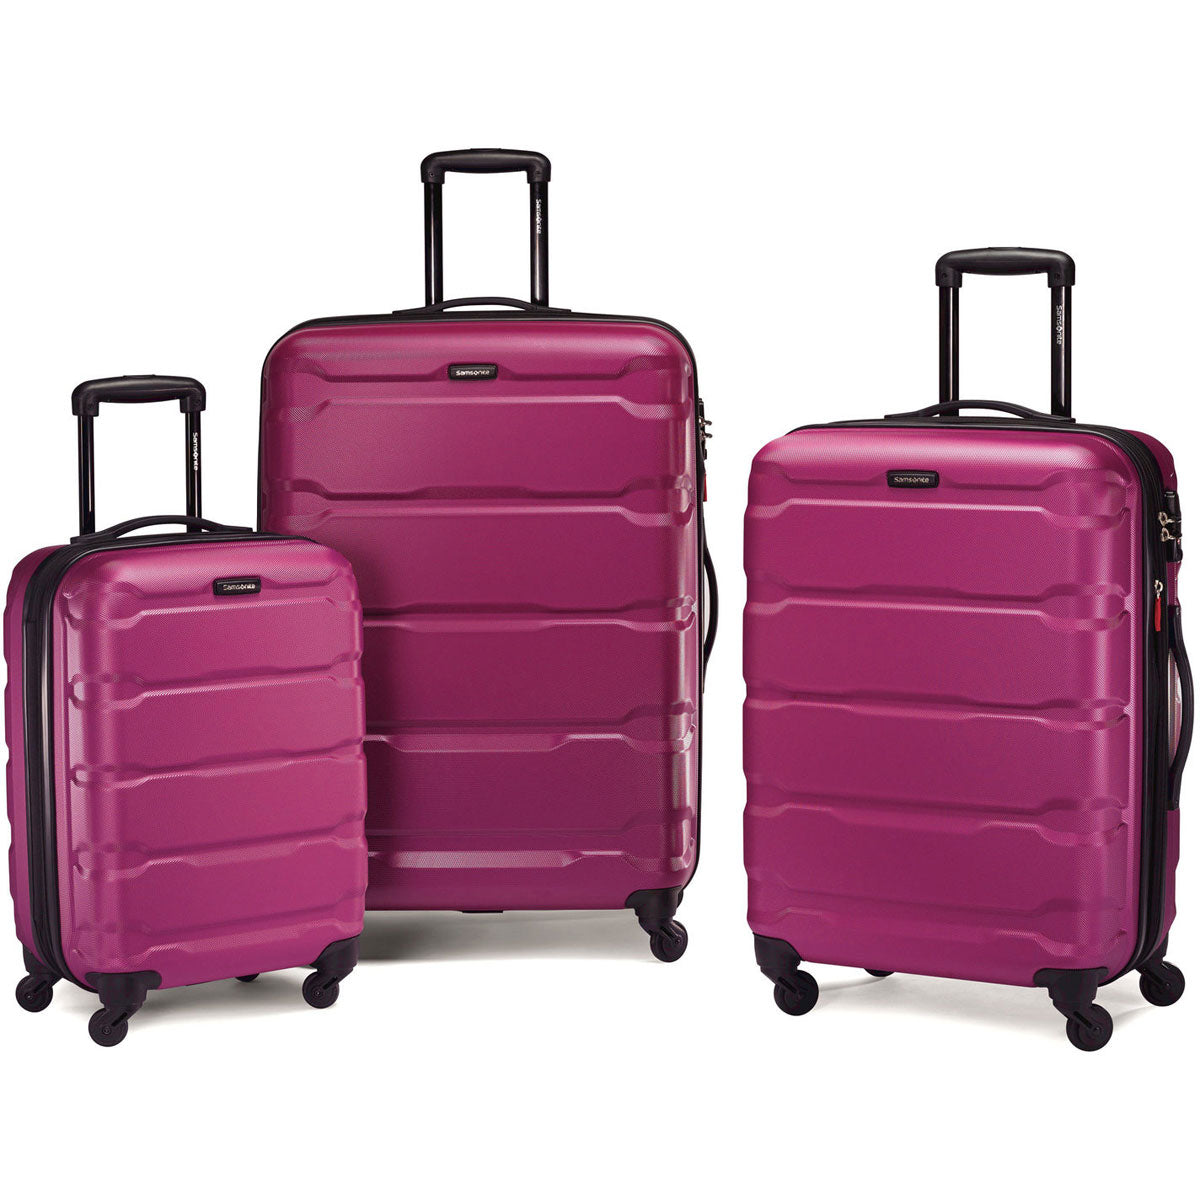 Samsonite Omni PC 3-Piece Set